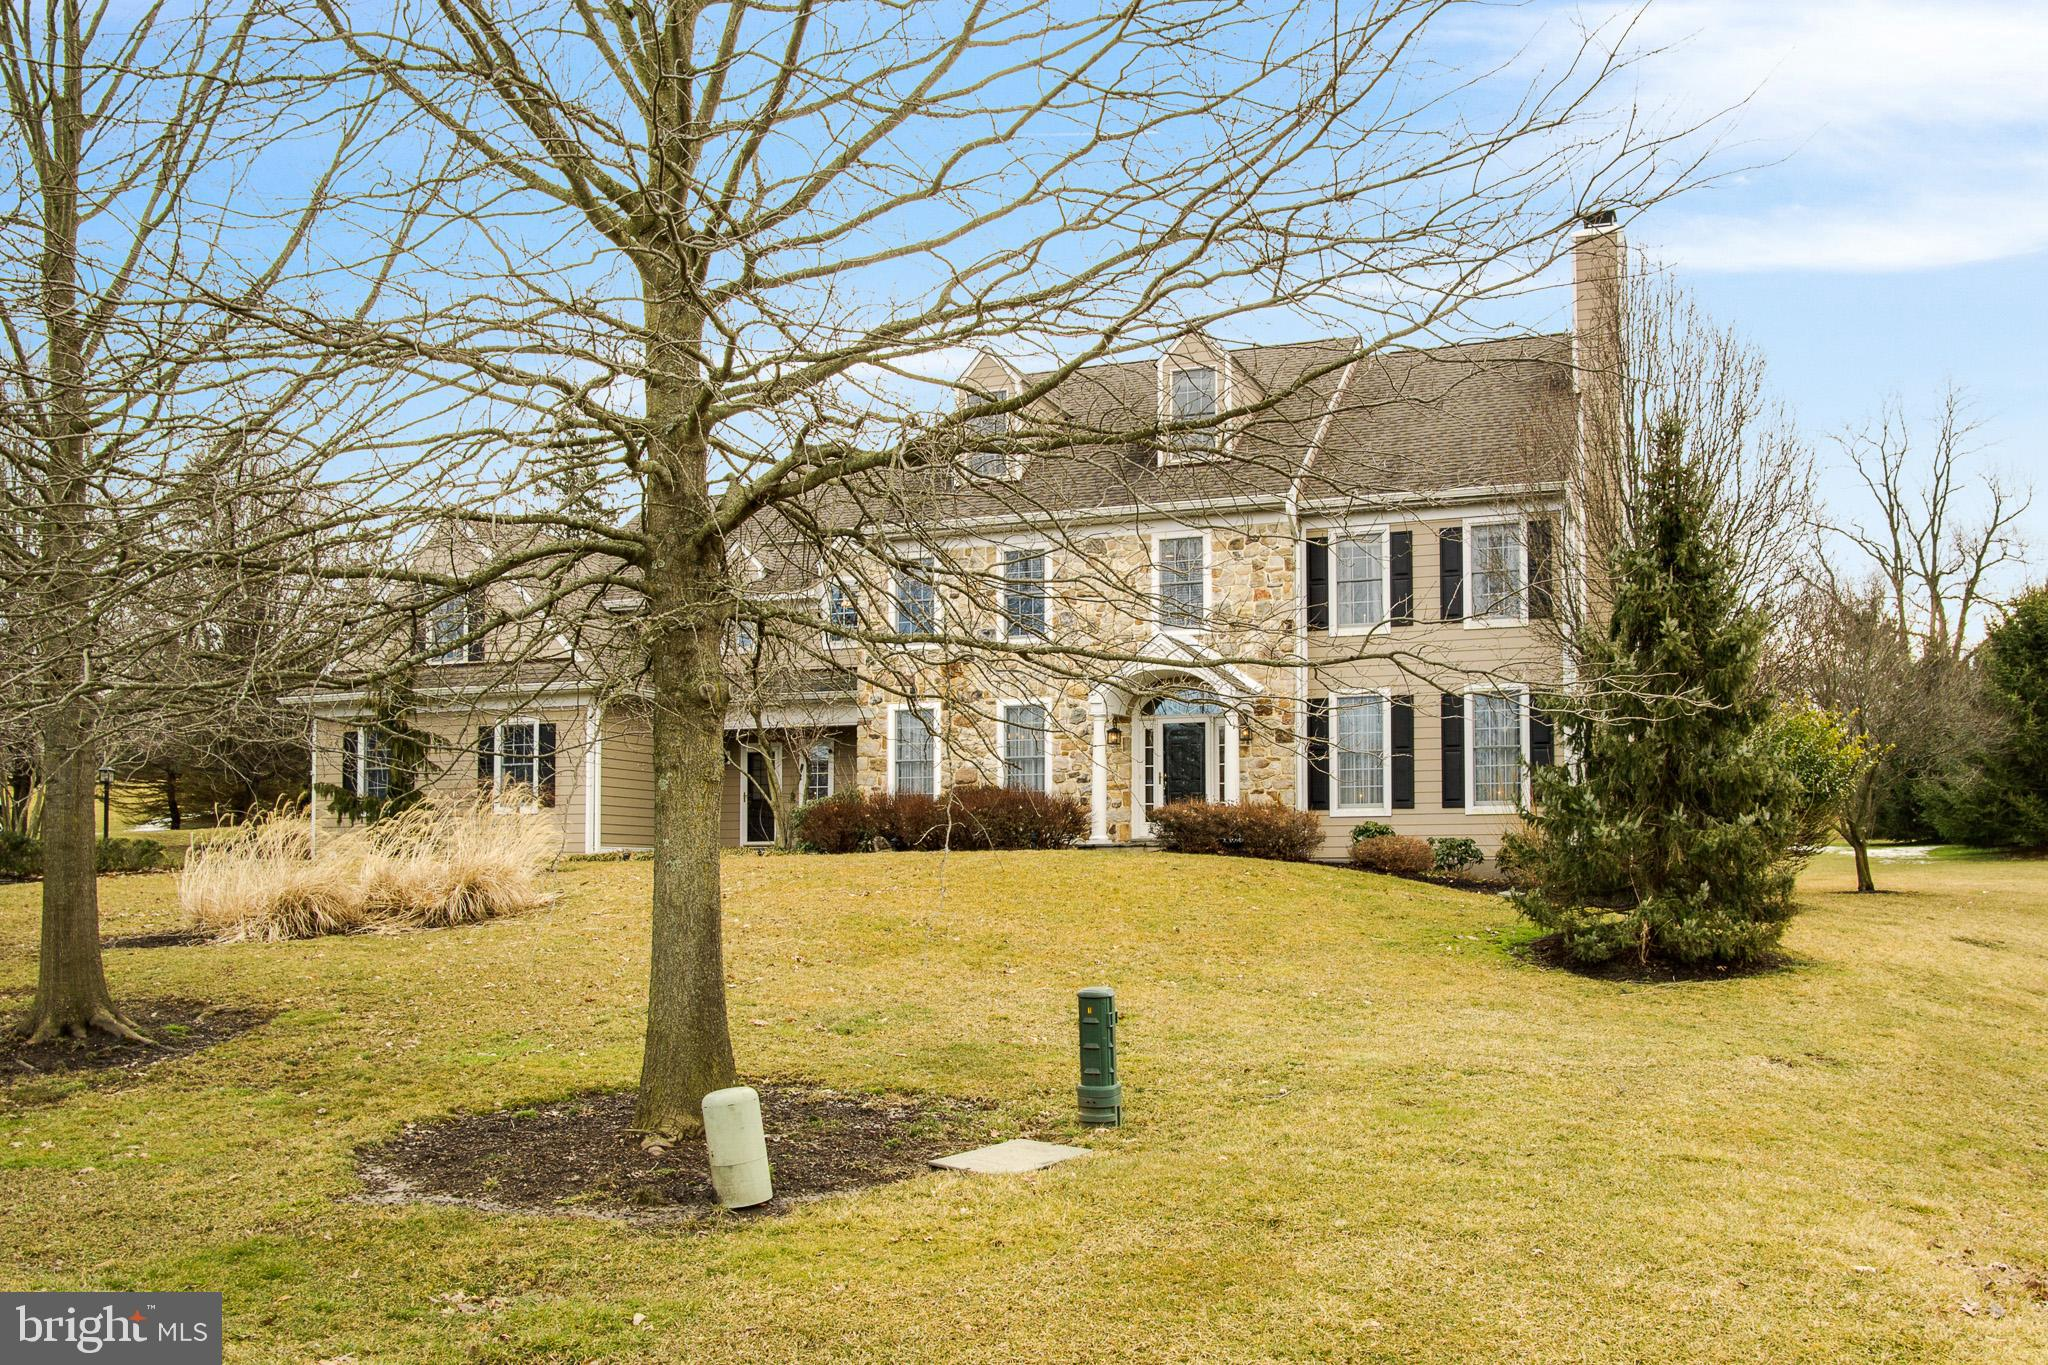 1 PEALE DRIVE, WEST CHESTER, PA 19382